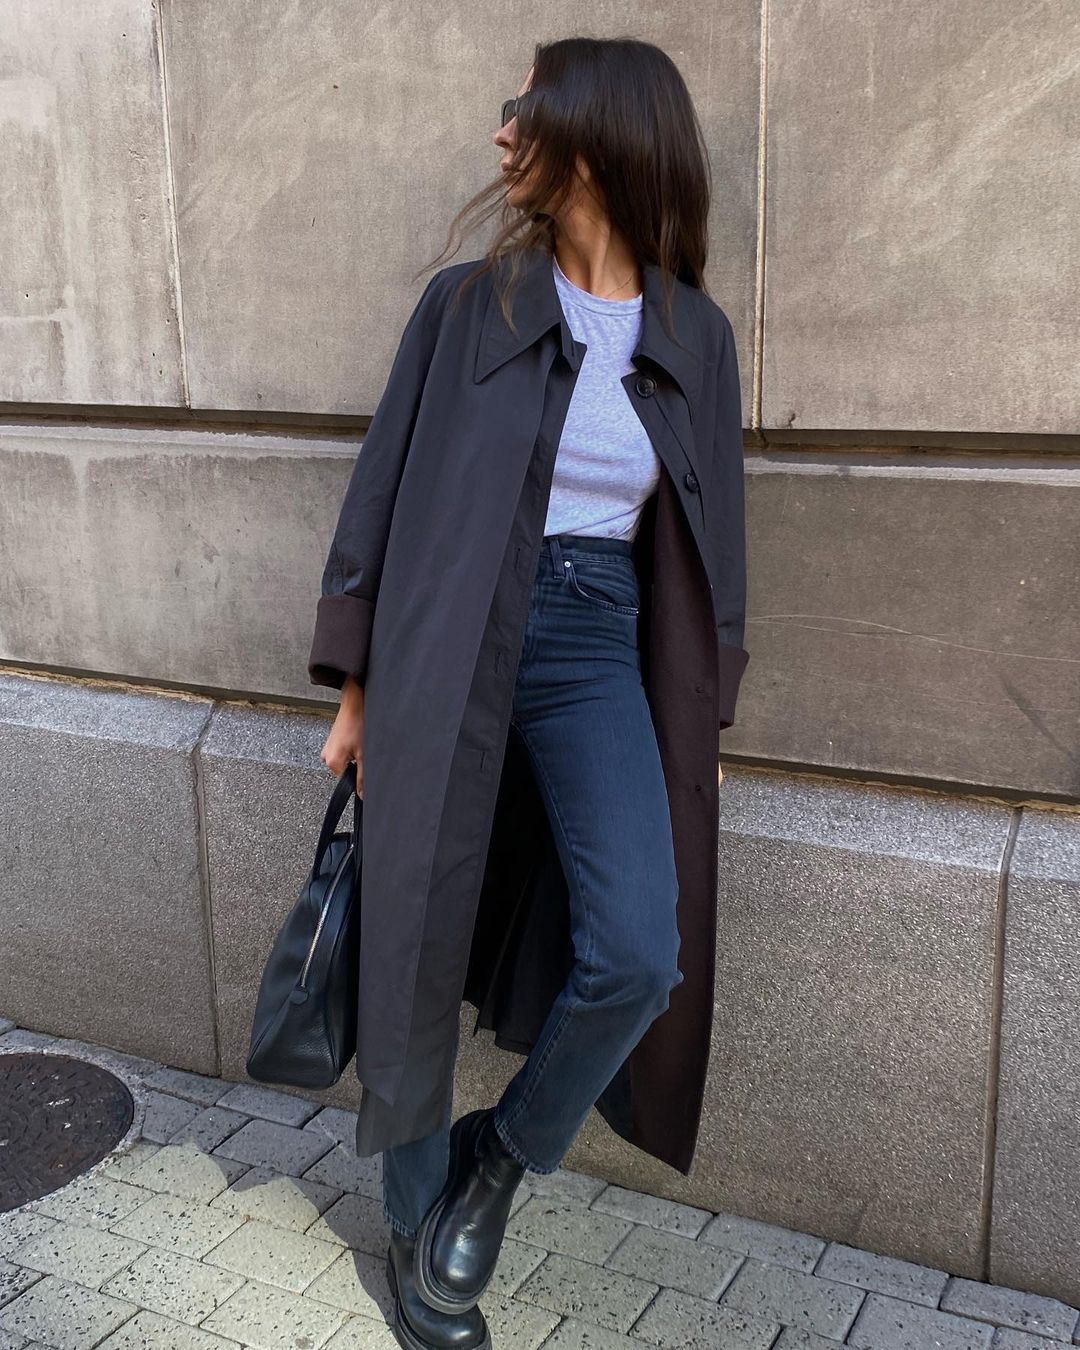 marianne-smyth-low-classic-layered-cotton-blend-trench-coat-instagram